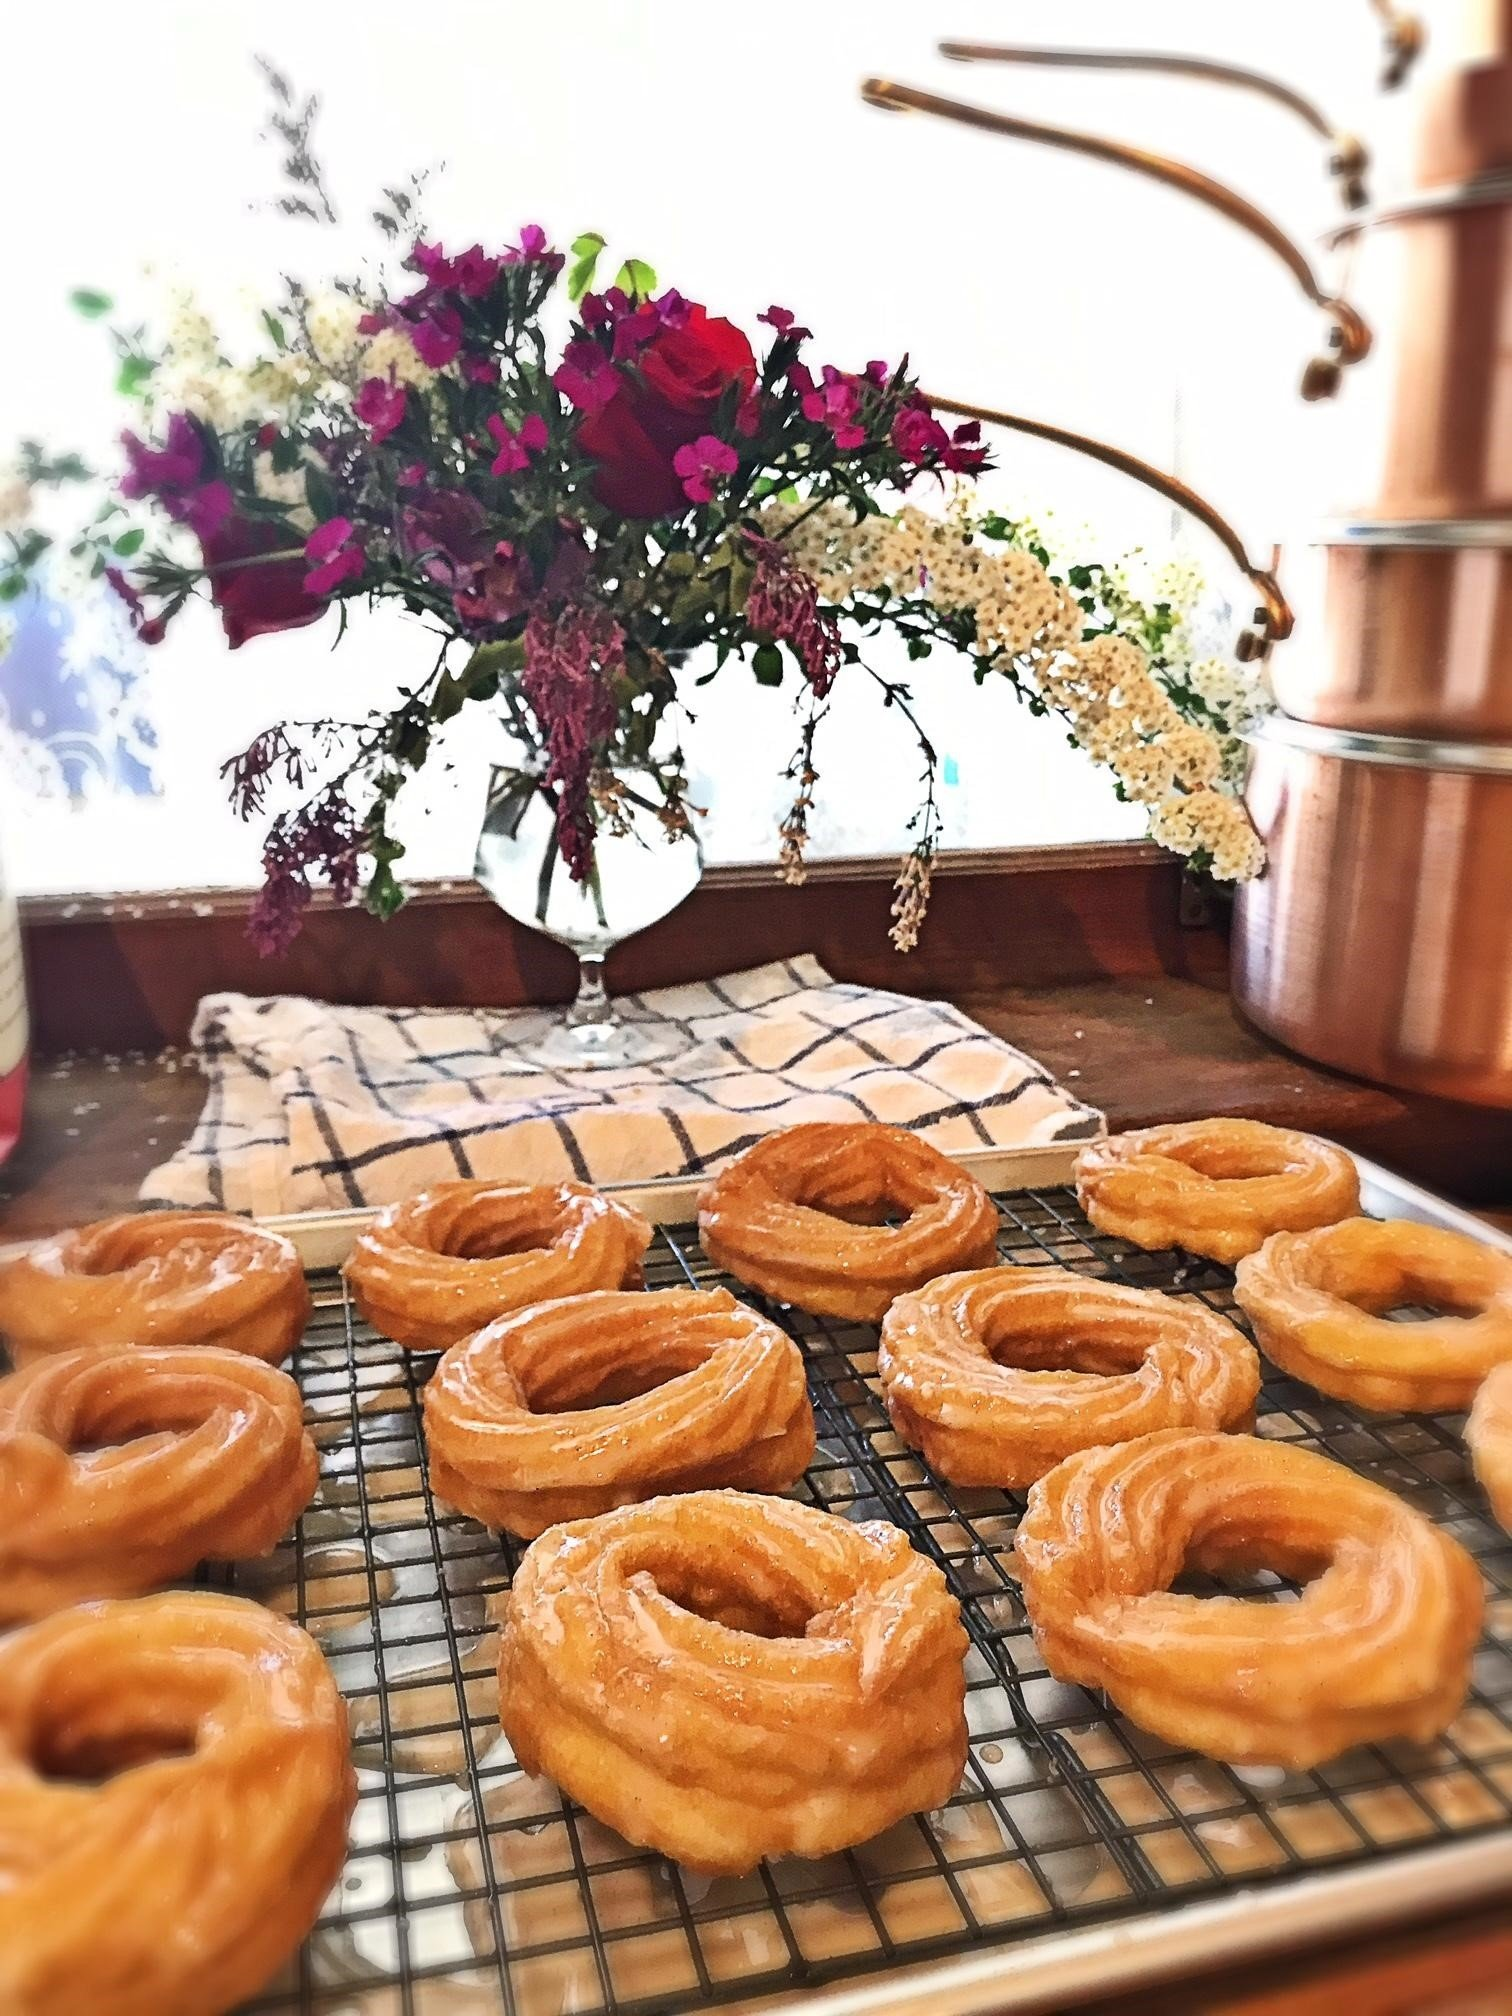 cruller dough finished